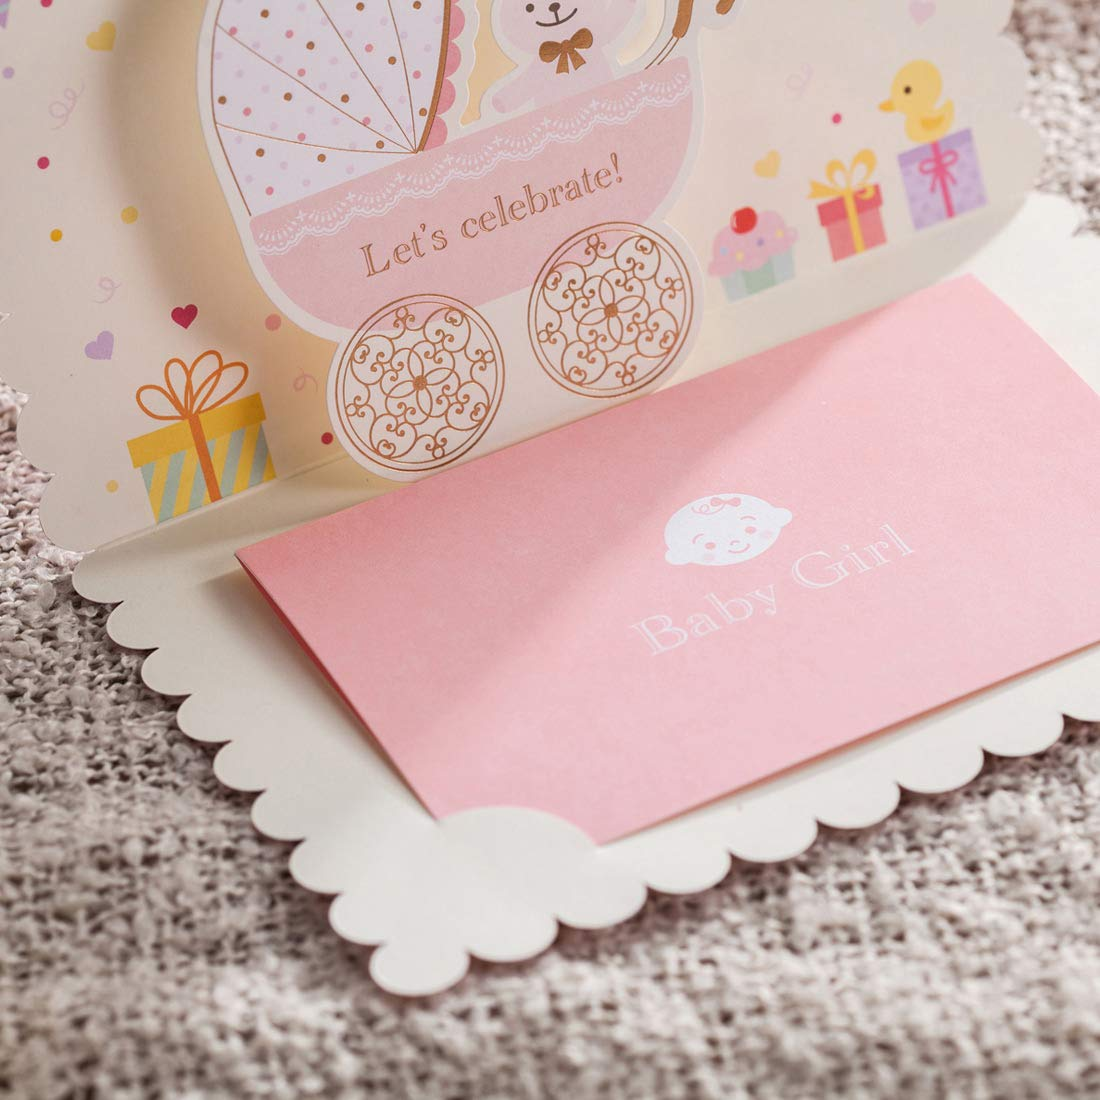 100X WISHMADE 3D Pink Baby Shower Invitation Card with Bear and Cartoon Car Design, Blank Printable Birthday Dinner Party Invites Kits for Little Girl with Envelopes CW5301 by WISHMADE (Image #8)